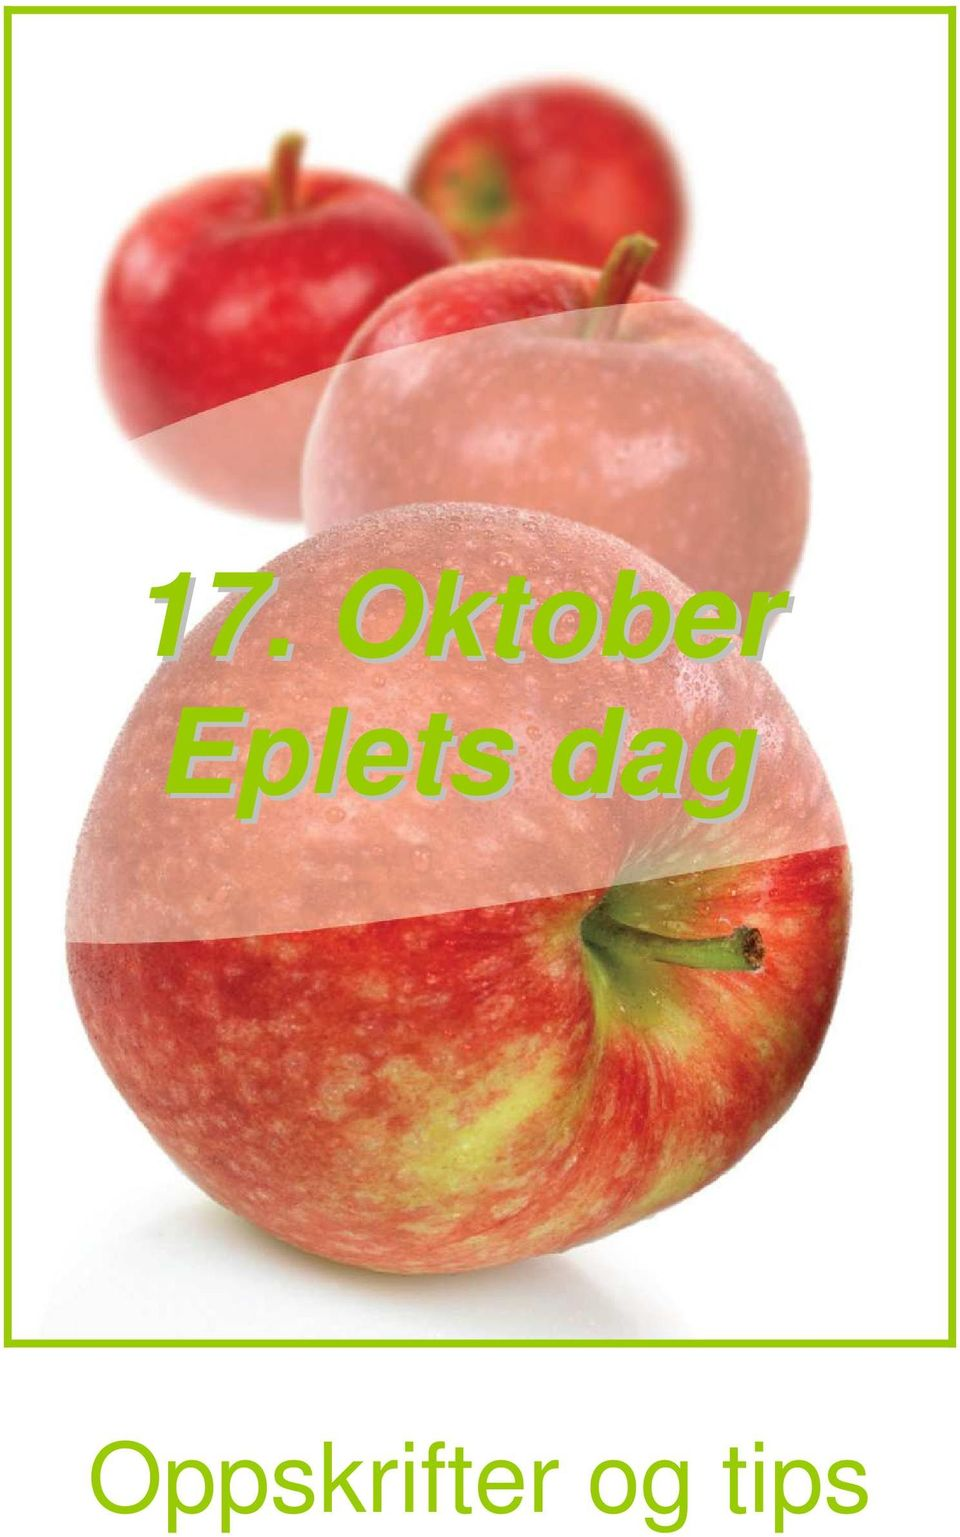 tips Når du kutter